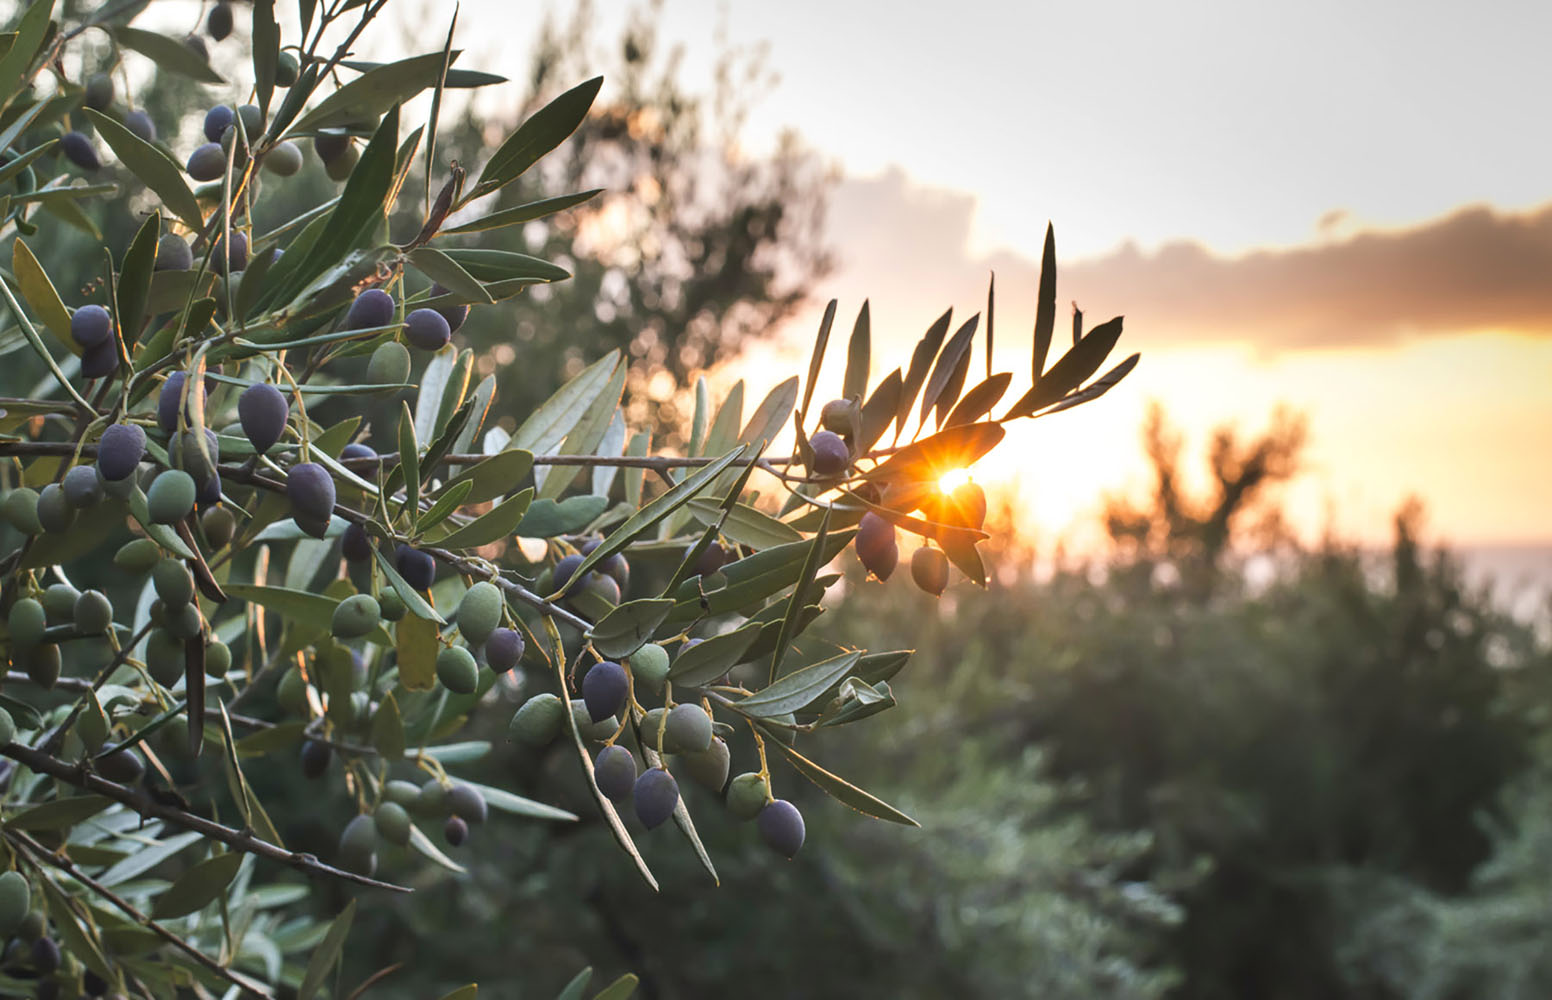 The sun shining through the branches of an olive tree at sunset.